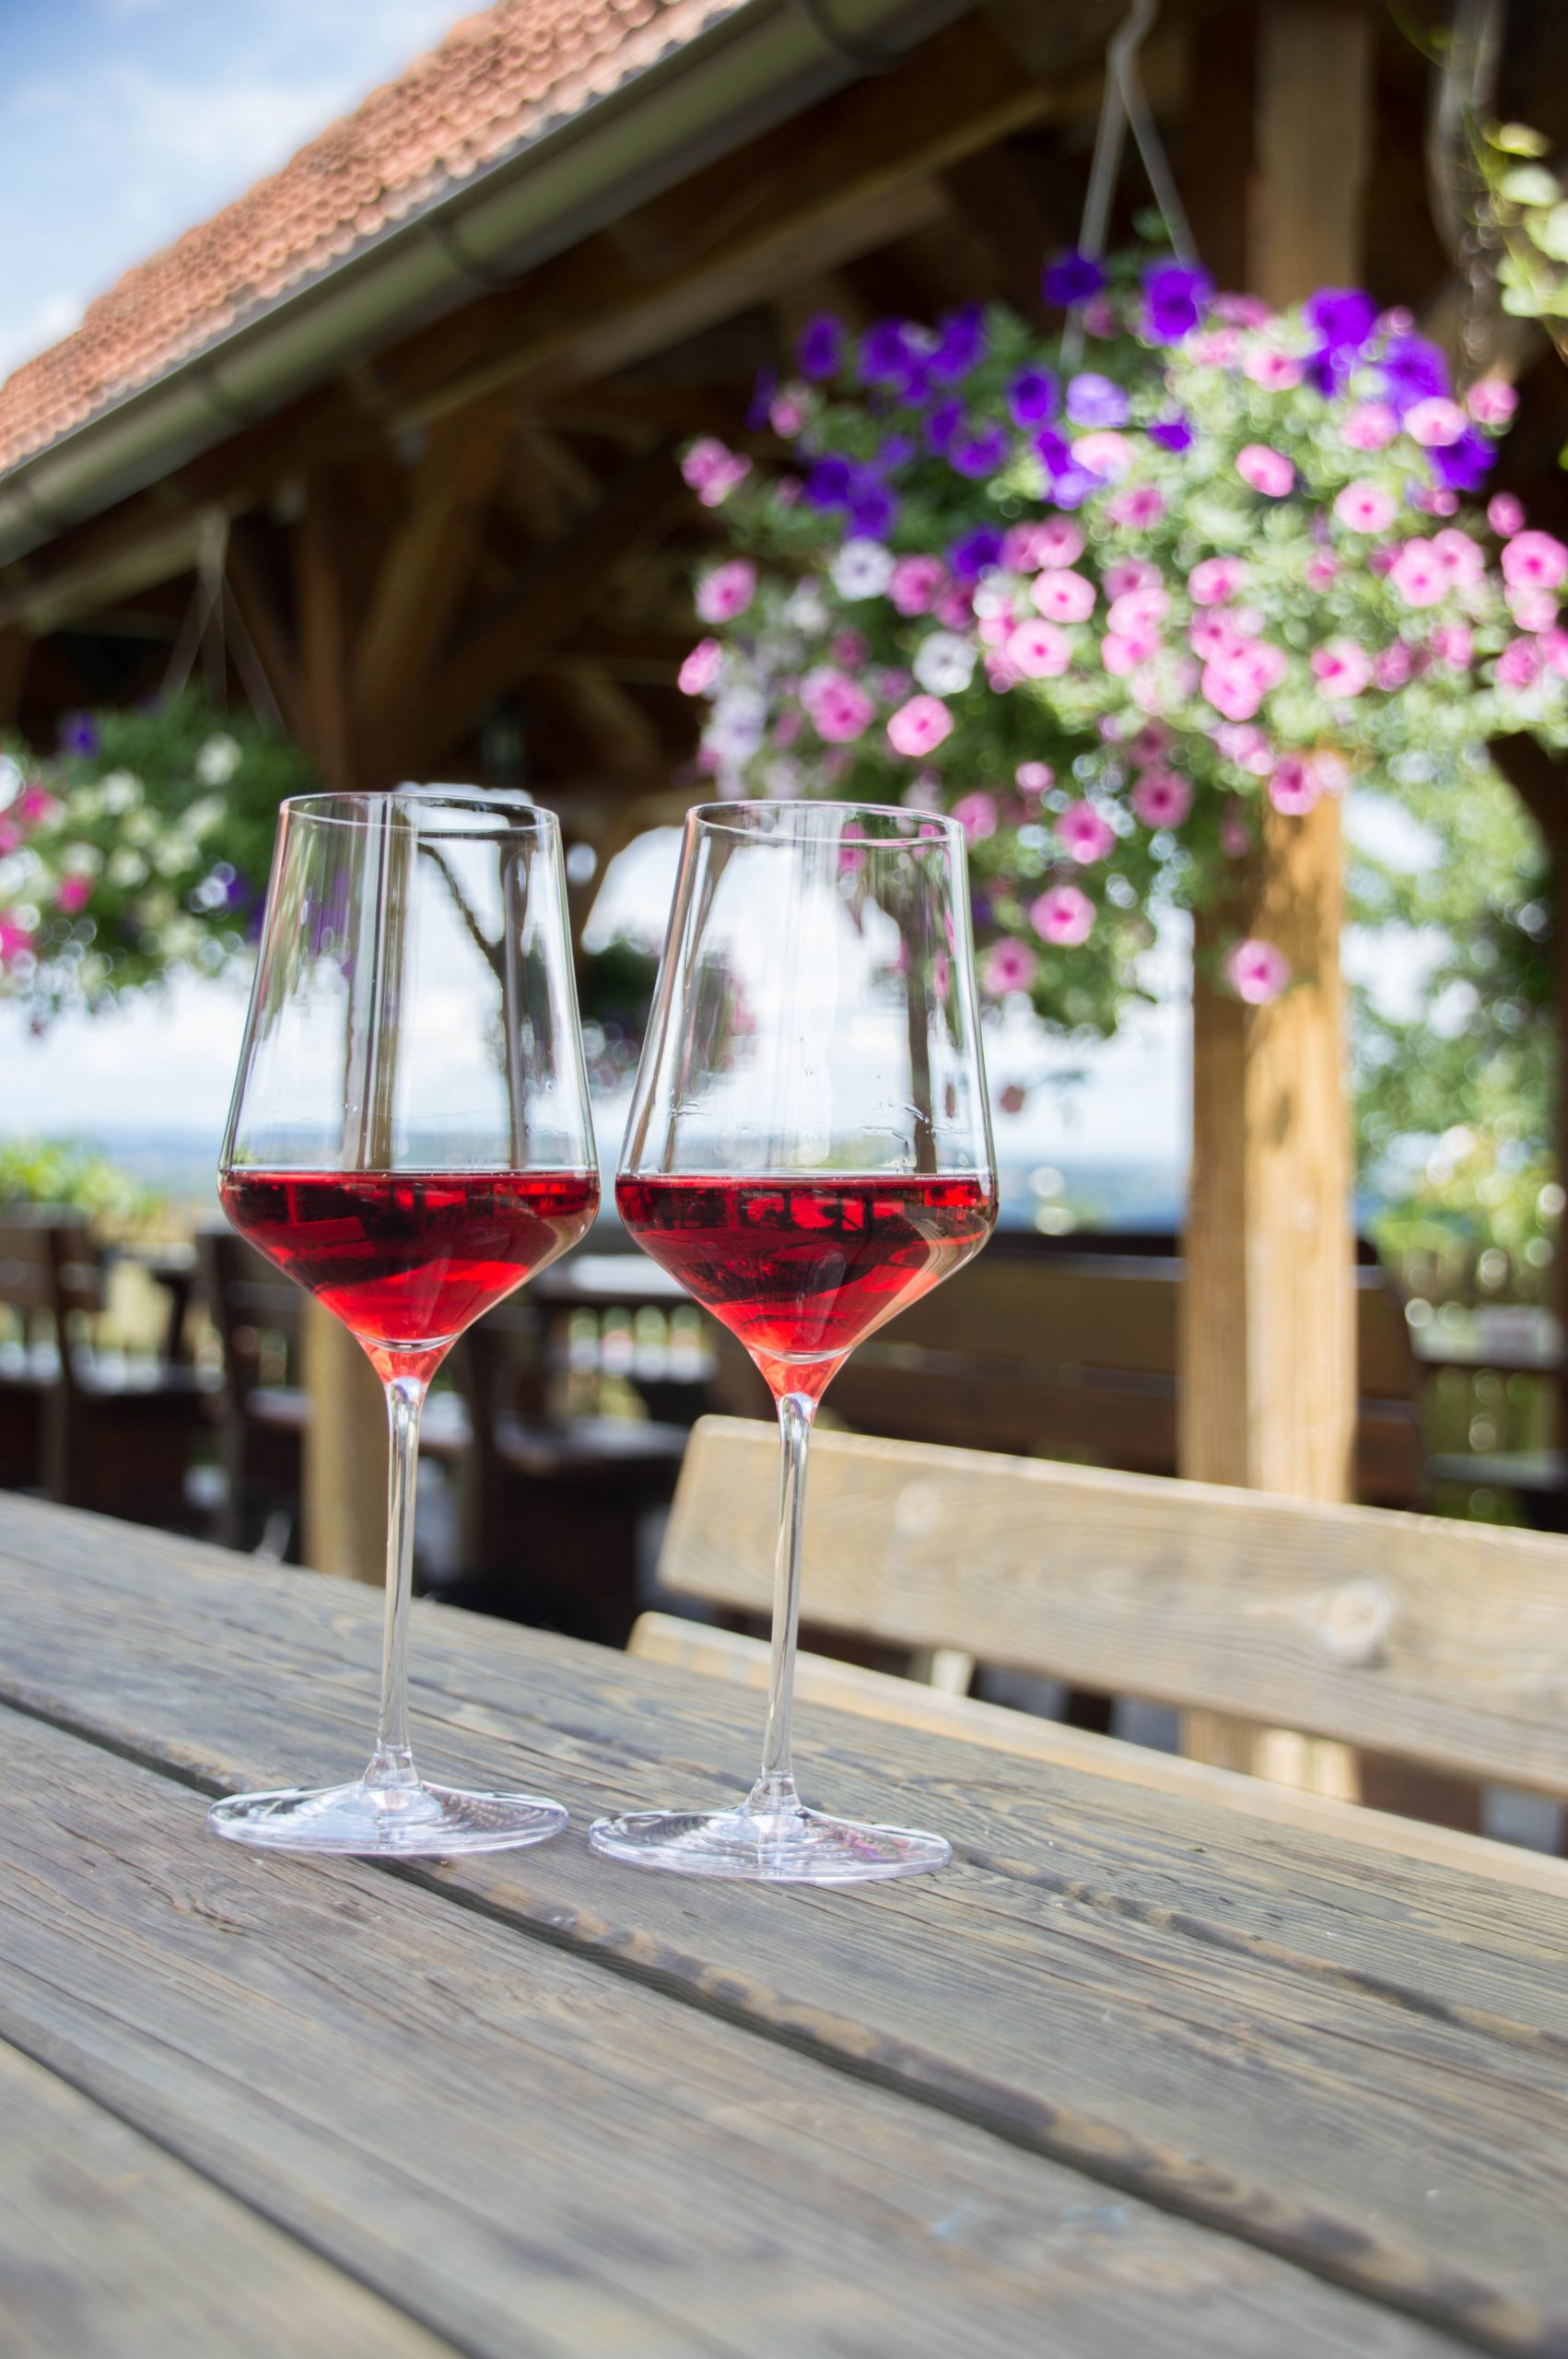 weingut hiden glasses with red wine ready for tasting in the yard